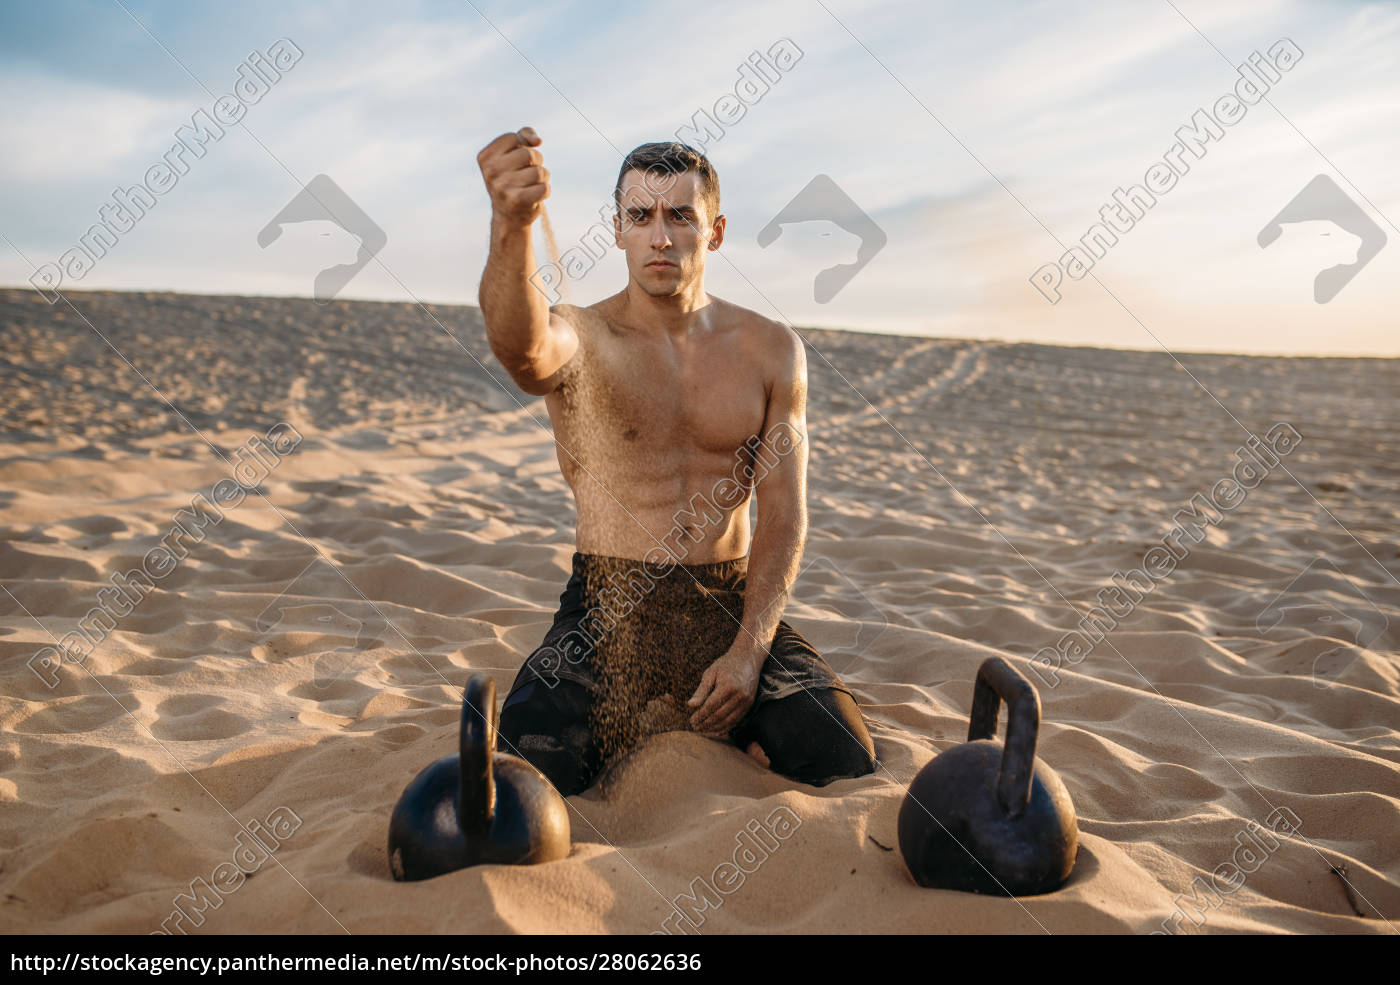 sportsman, after, workout, in, desert, at - 28062636